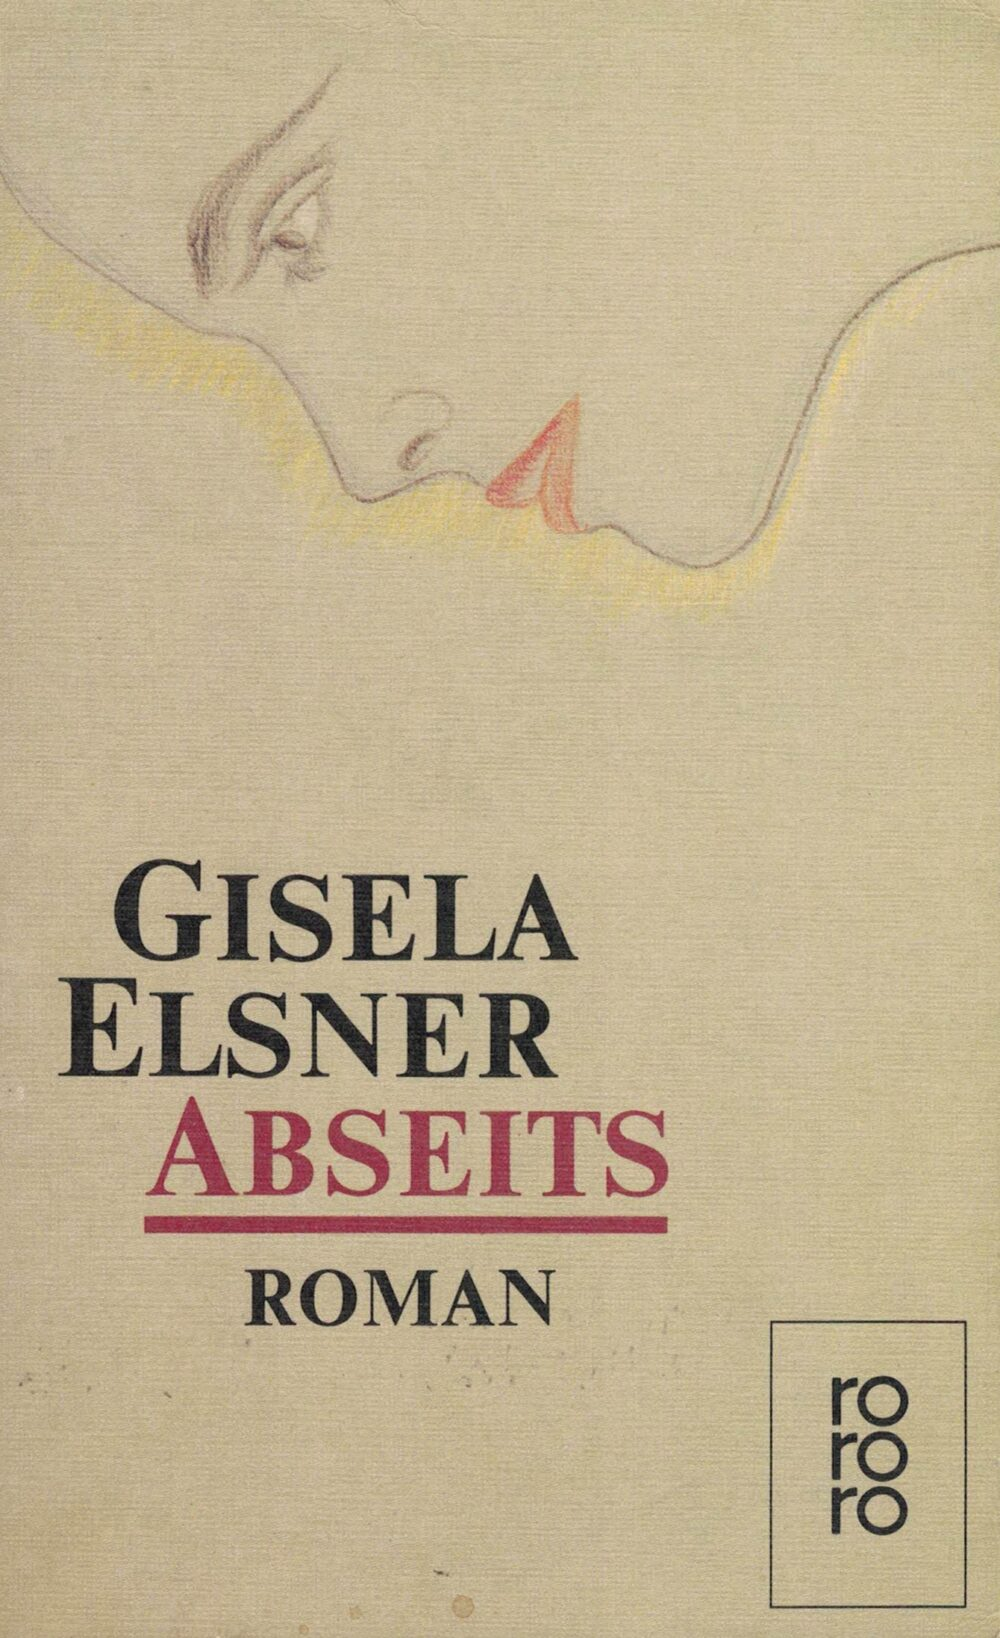 Gisela Elsner - Abseits - Roman